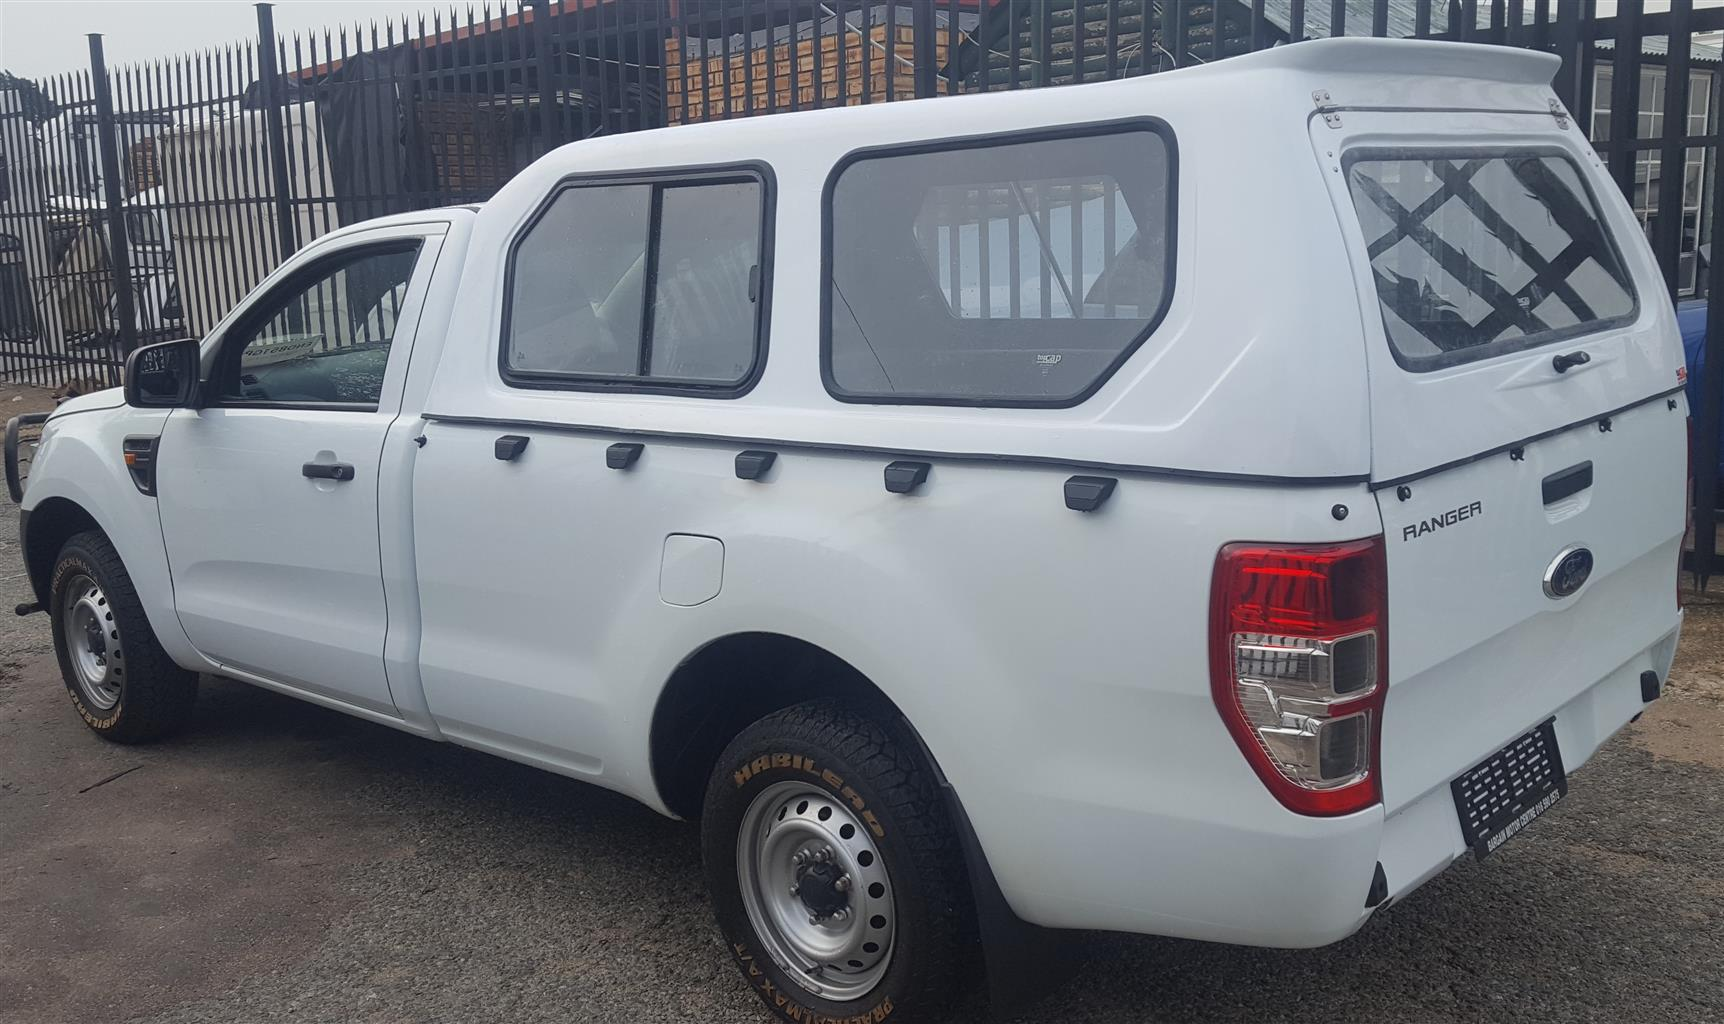 GC BRAND NEW FORD RANGER T6 LWB HI LINER WHITE BAKKIE CANOPY FOR SALE!!!